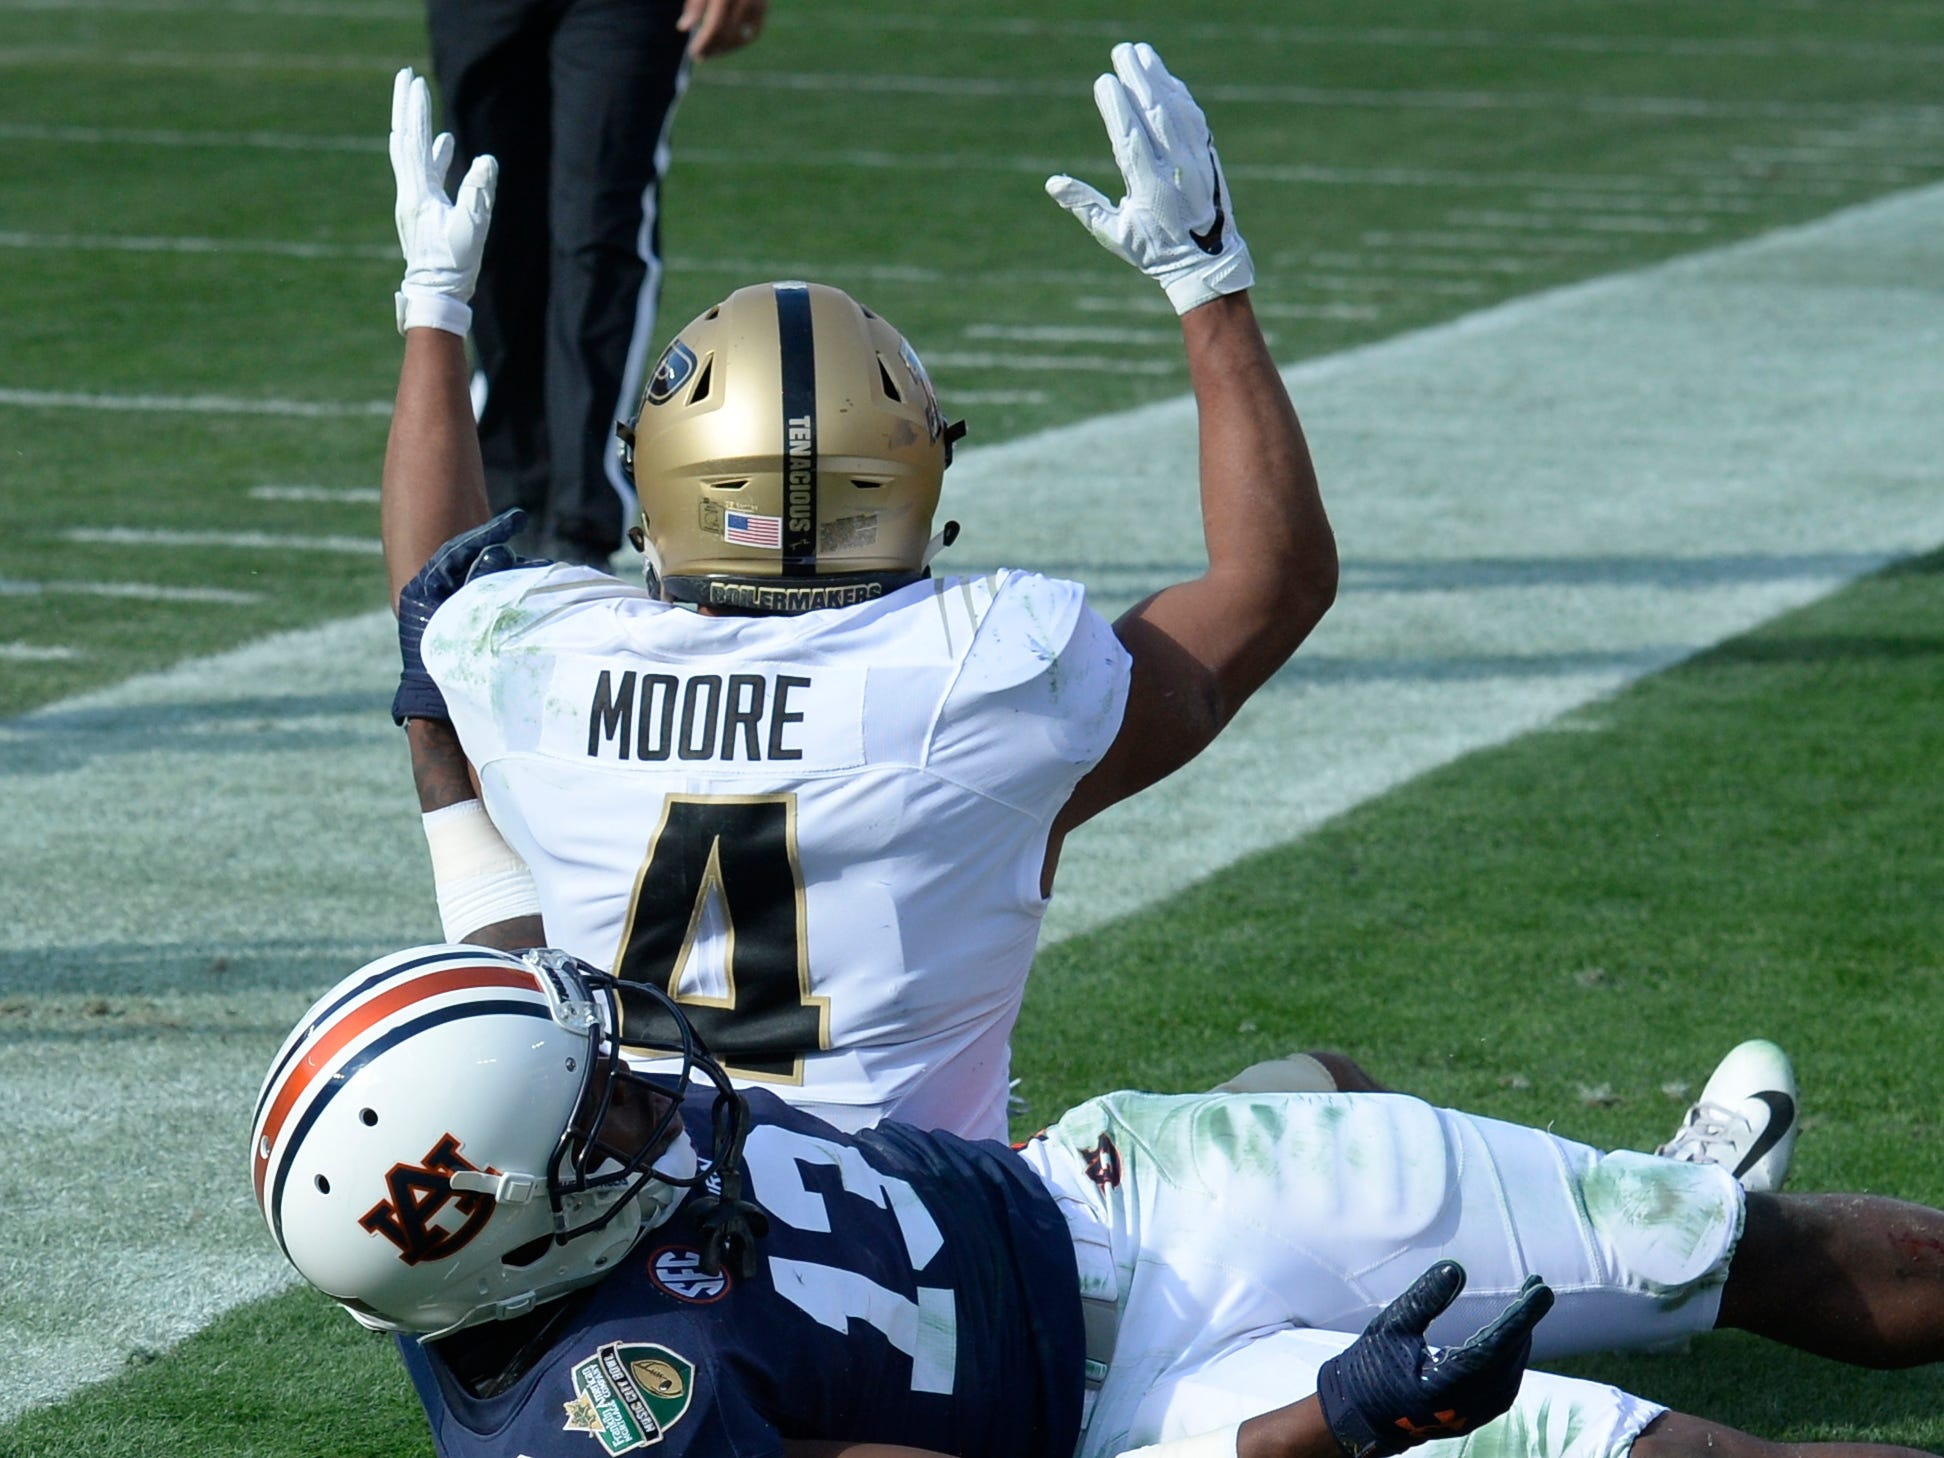 Purdue wide receiver Rondale Moore (4) motions for a touchdown to the referee in the first quarter of the Music City Bowl NCAA college football game Friday, Dec. 28, 2018, at Nissan Stadium in Nashville, Tenn.